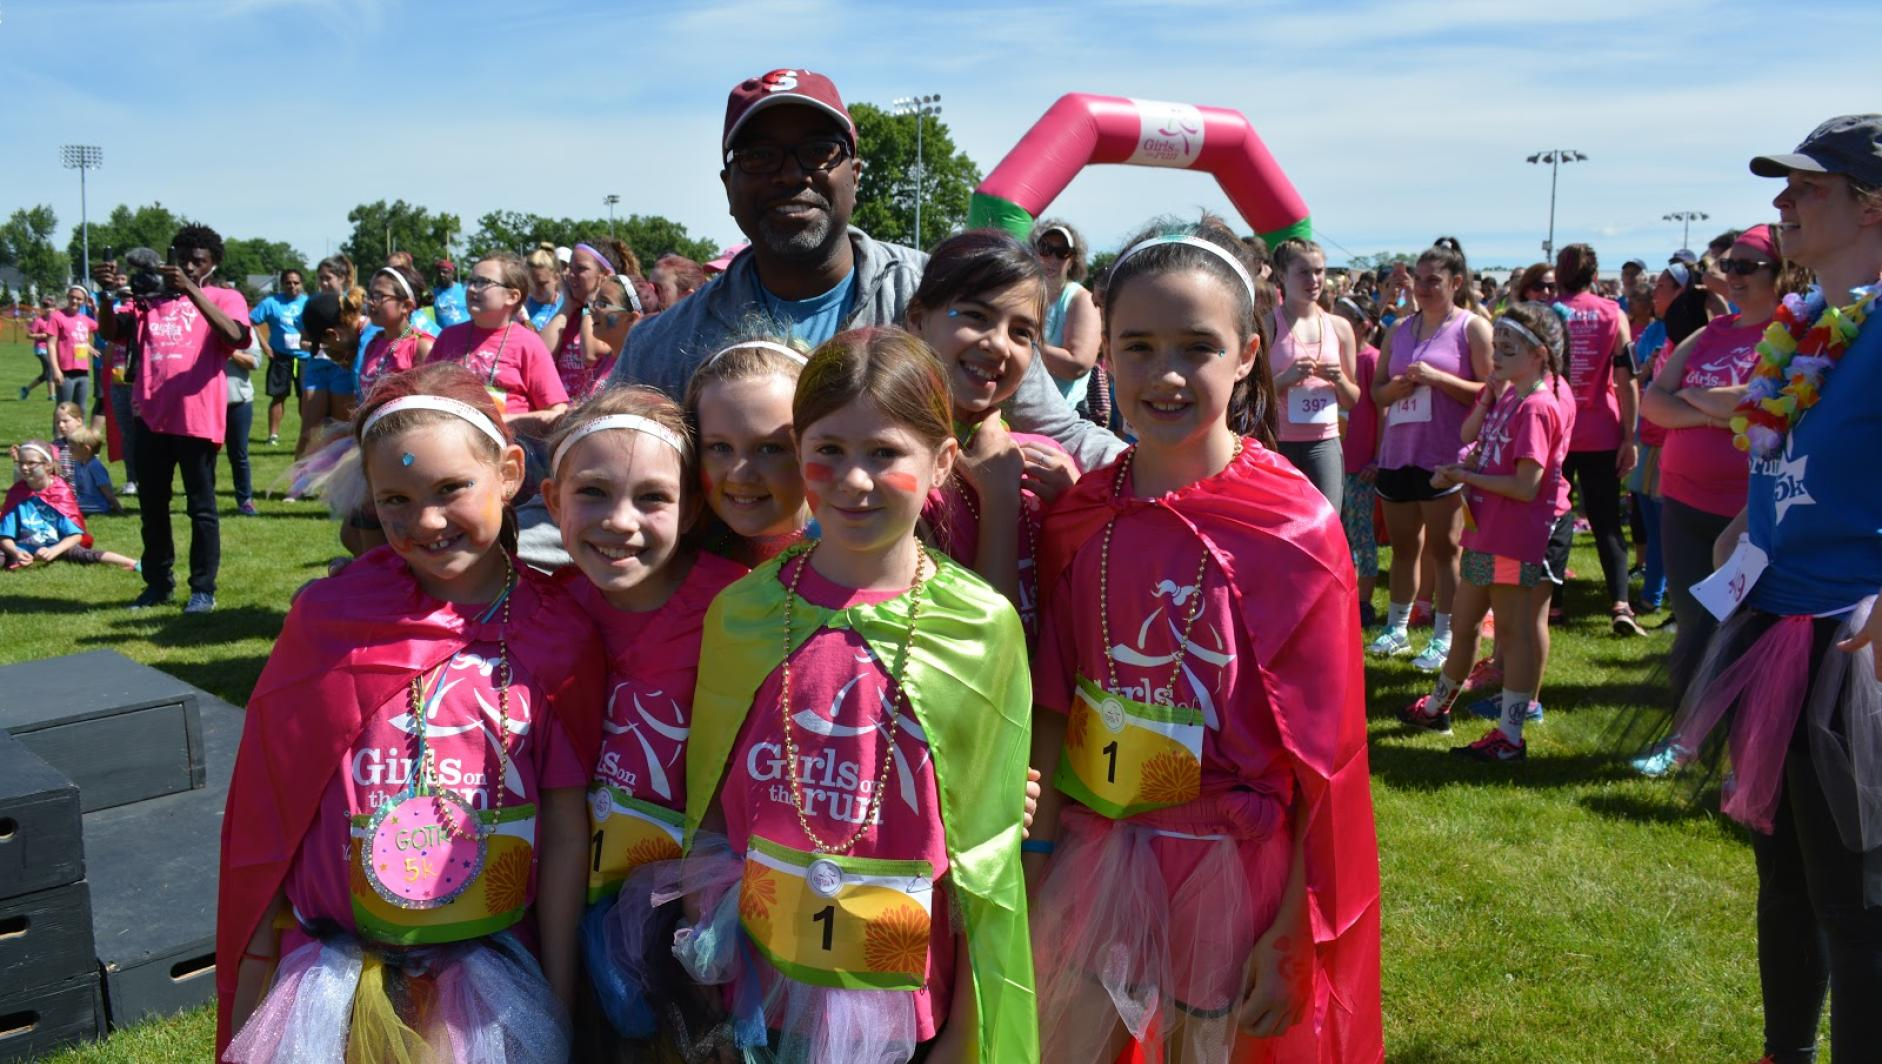 Calvin Hill poses with Girls on the Run participants.